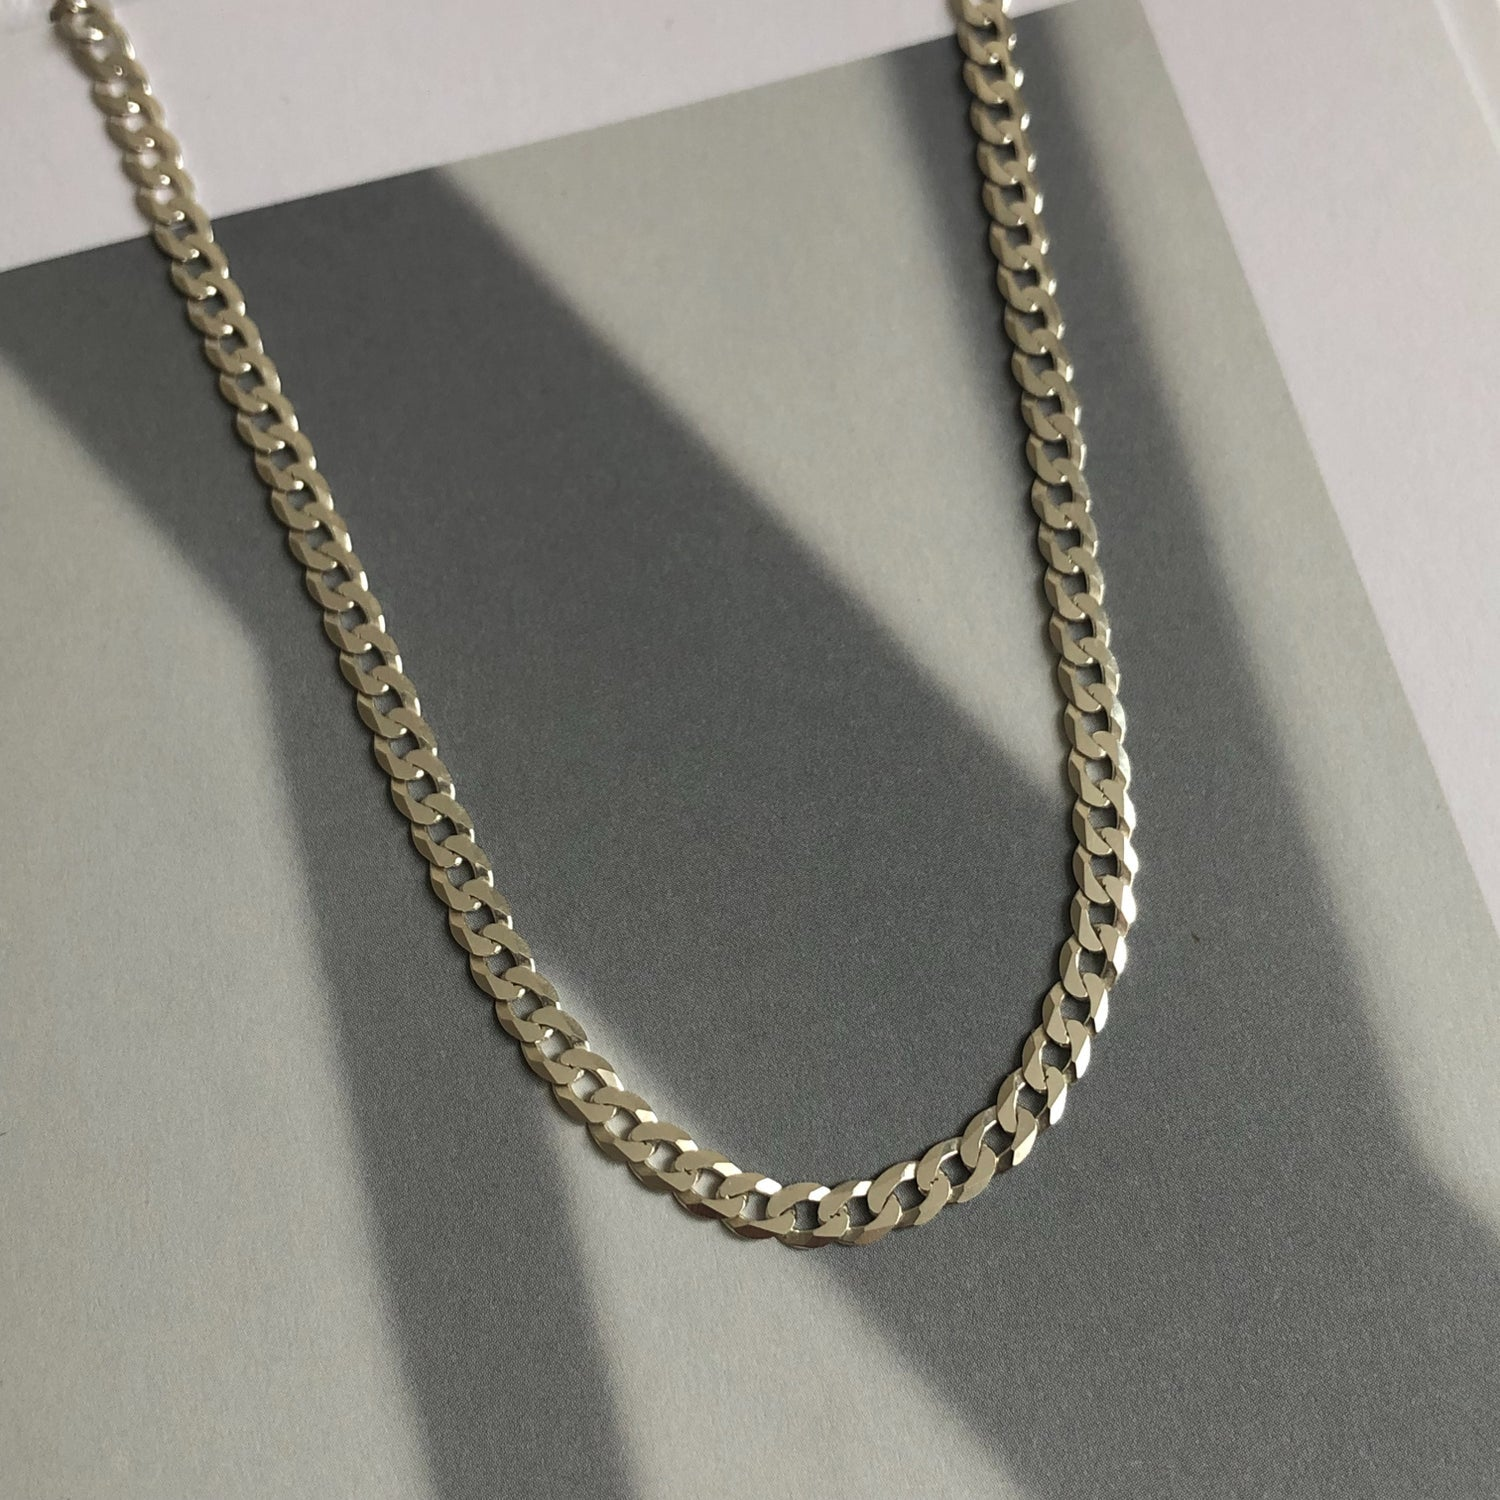 Diamond cut sterling silver curb chain